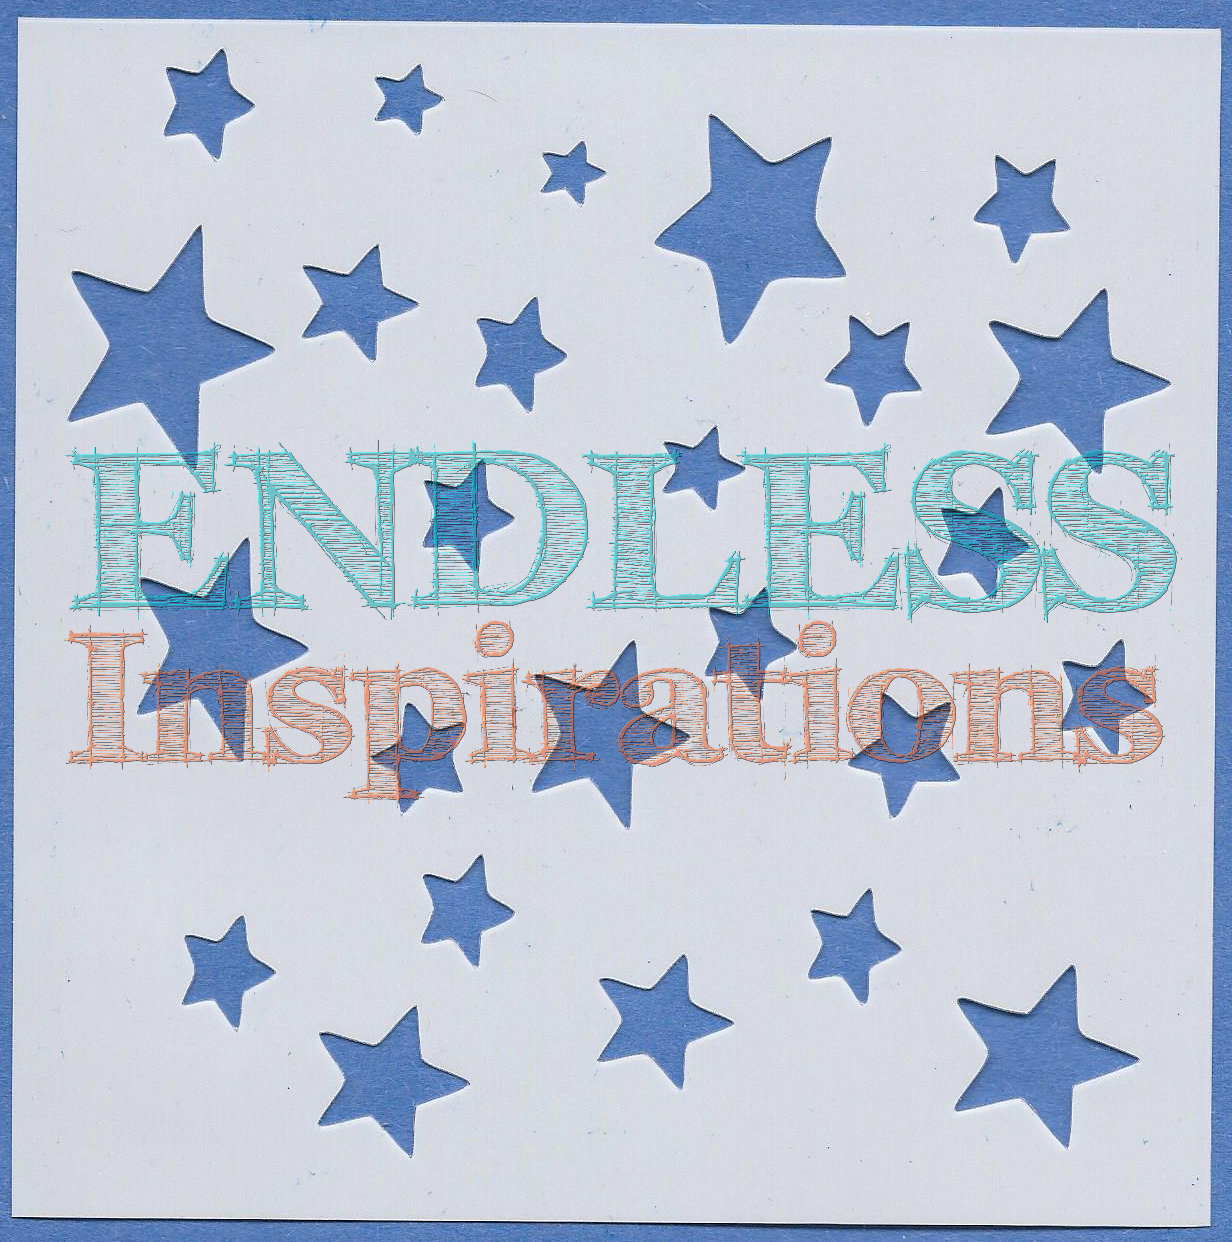 Endless Inspirations Original Stencil, 6 x 6 Inch, Scattered Stars - Redbird Inspirations